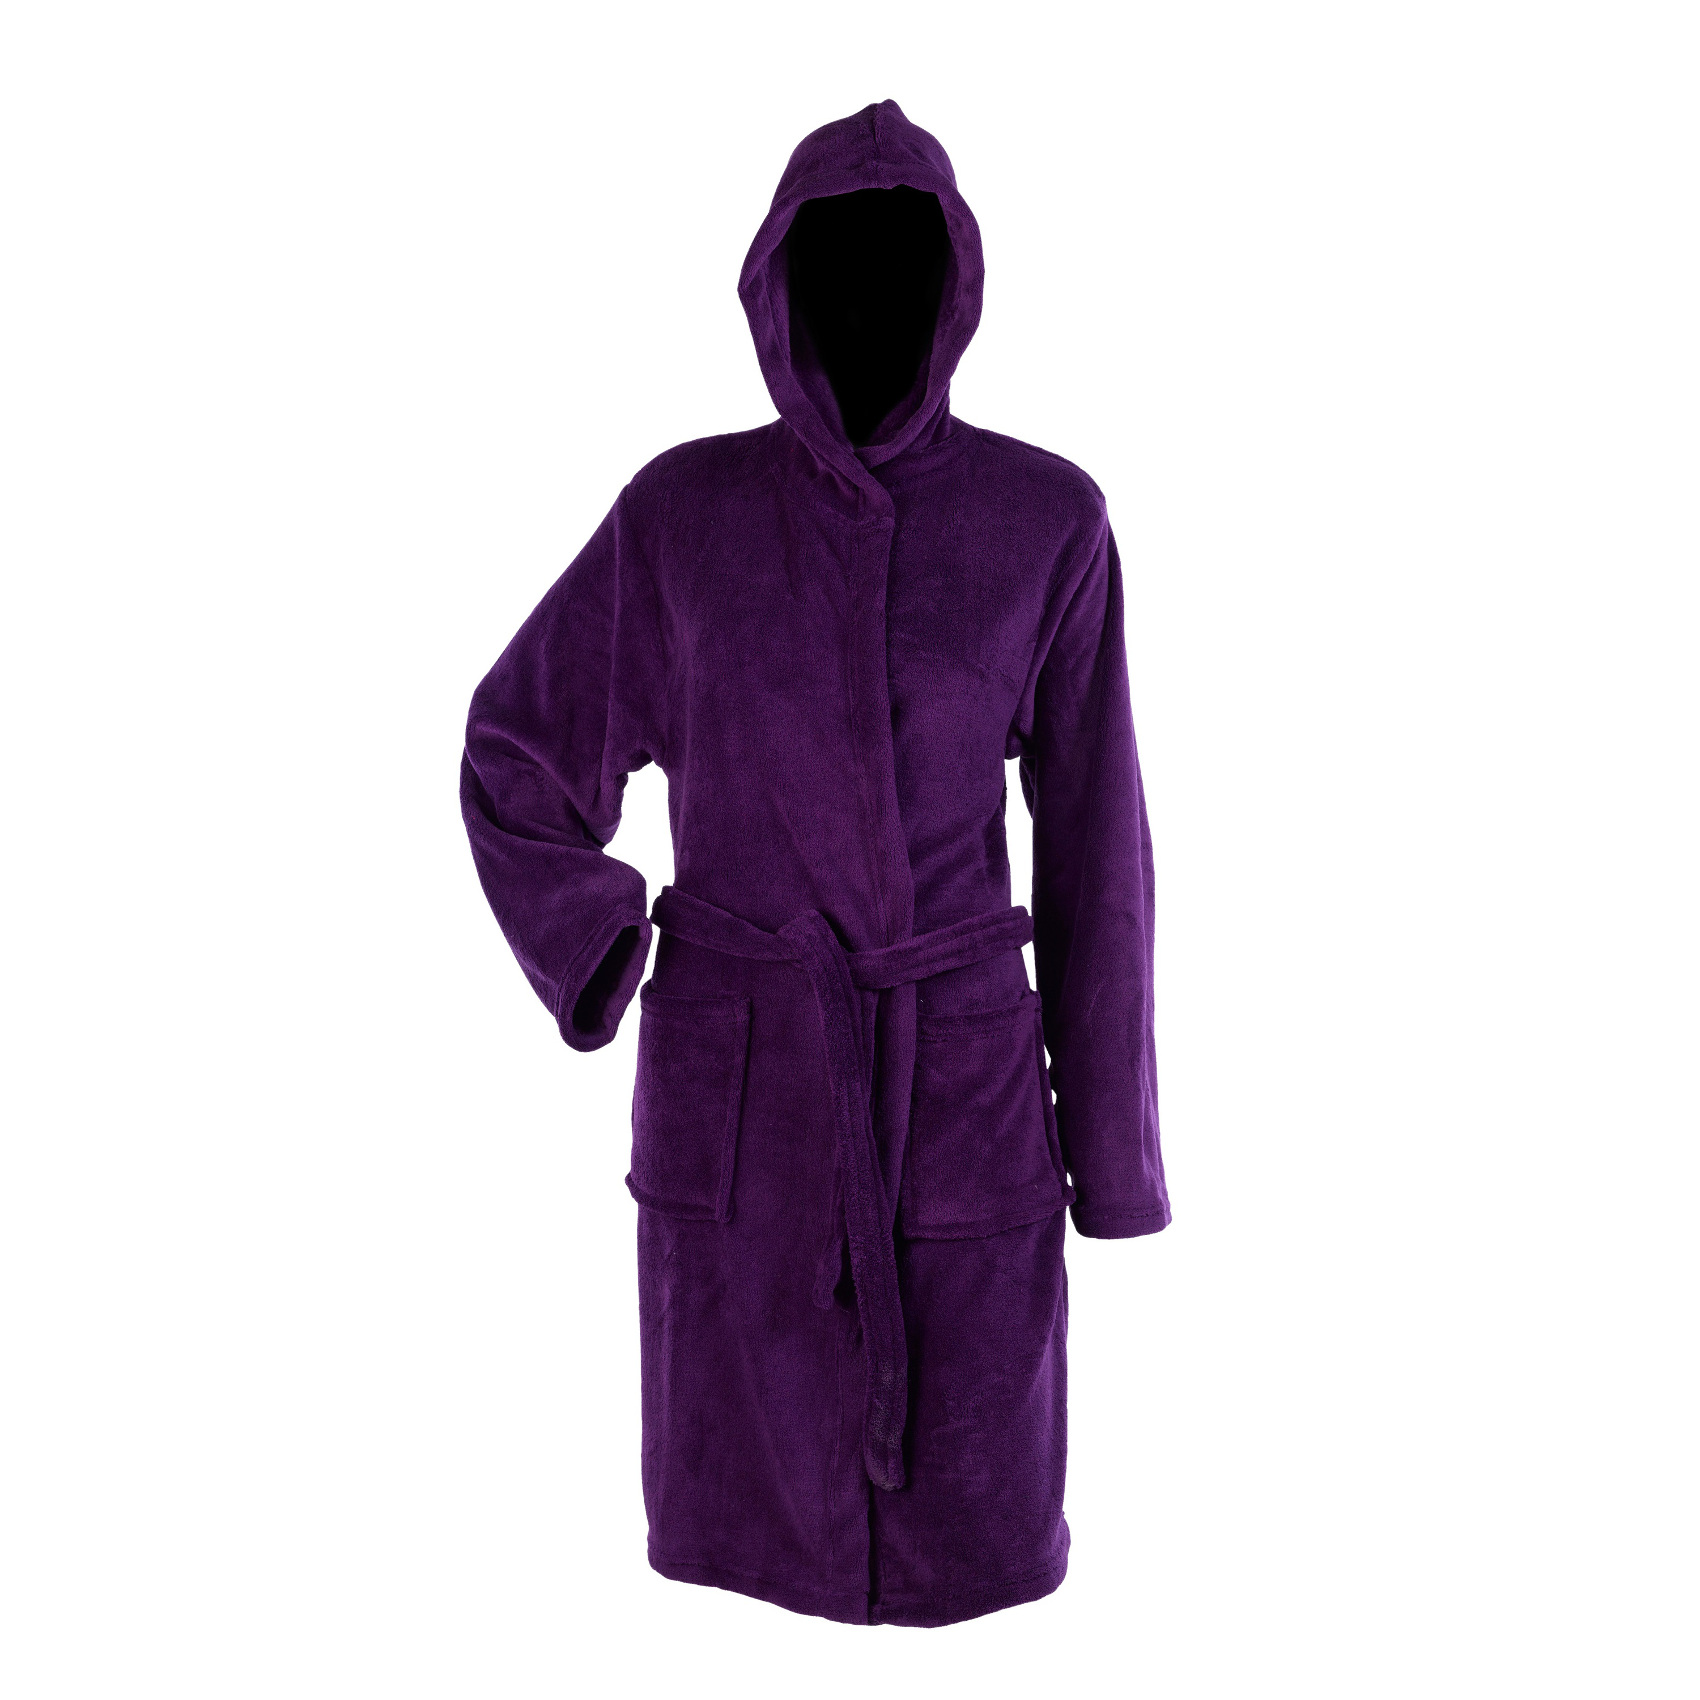 Womens Hooded Wrap Around Dressing Gown Soft Coral Fleece